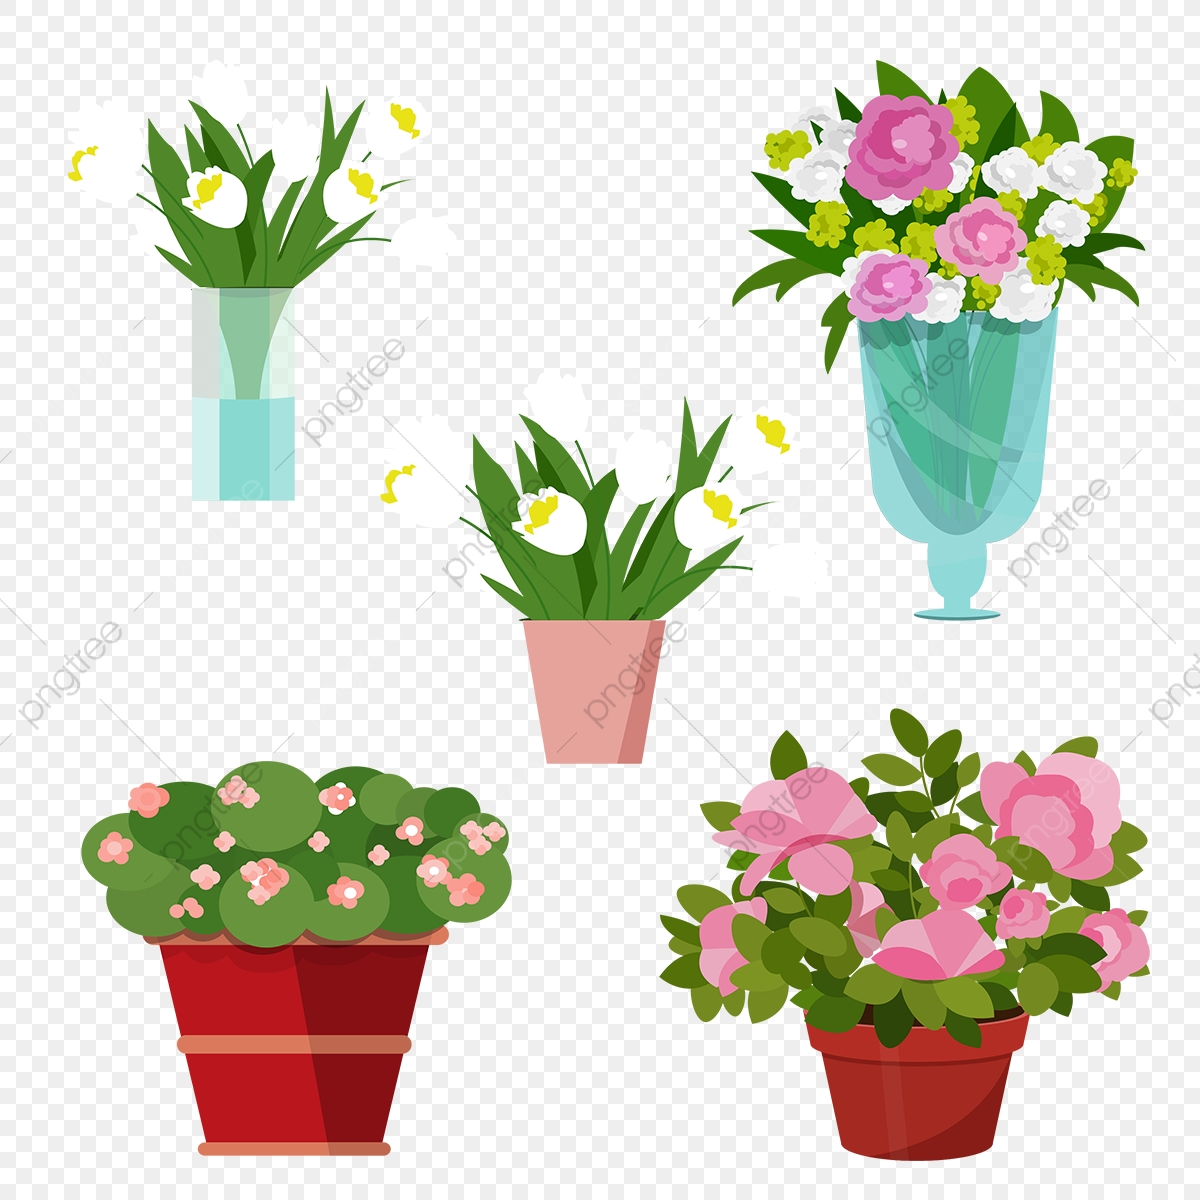 Flower Vase Png Images Vector And Psd Files Free Download On Pngtree